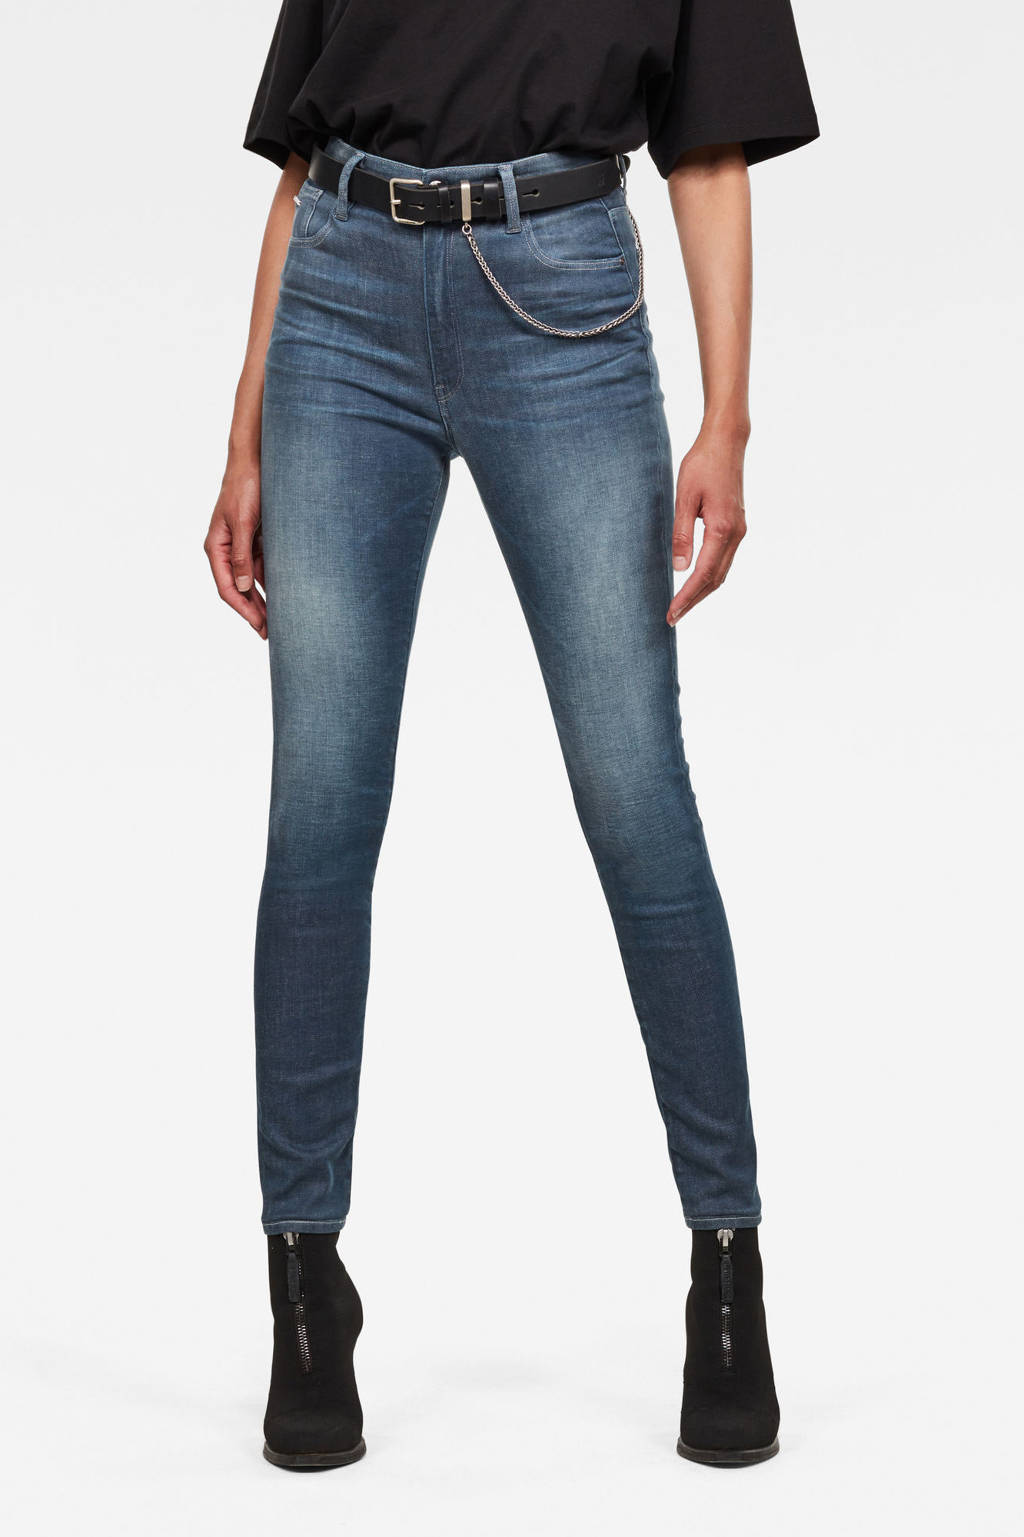 G-Star RAW high waist skinny jeans Kafey worn in gravel blue